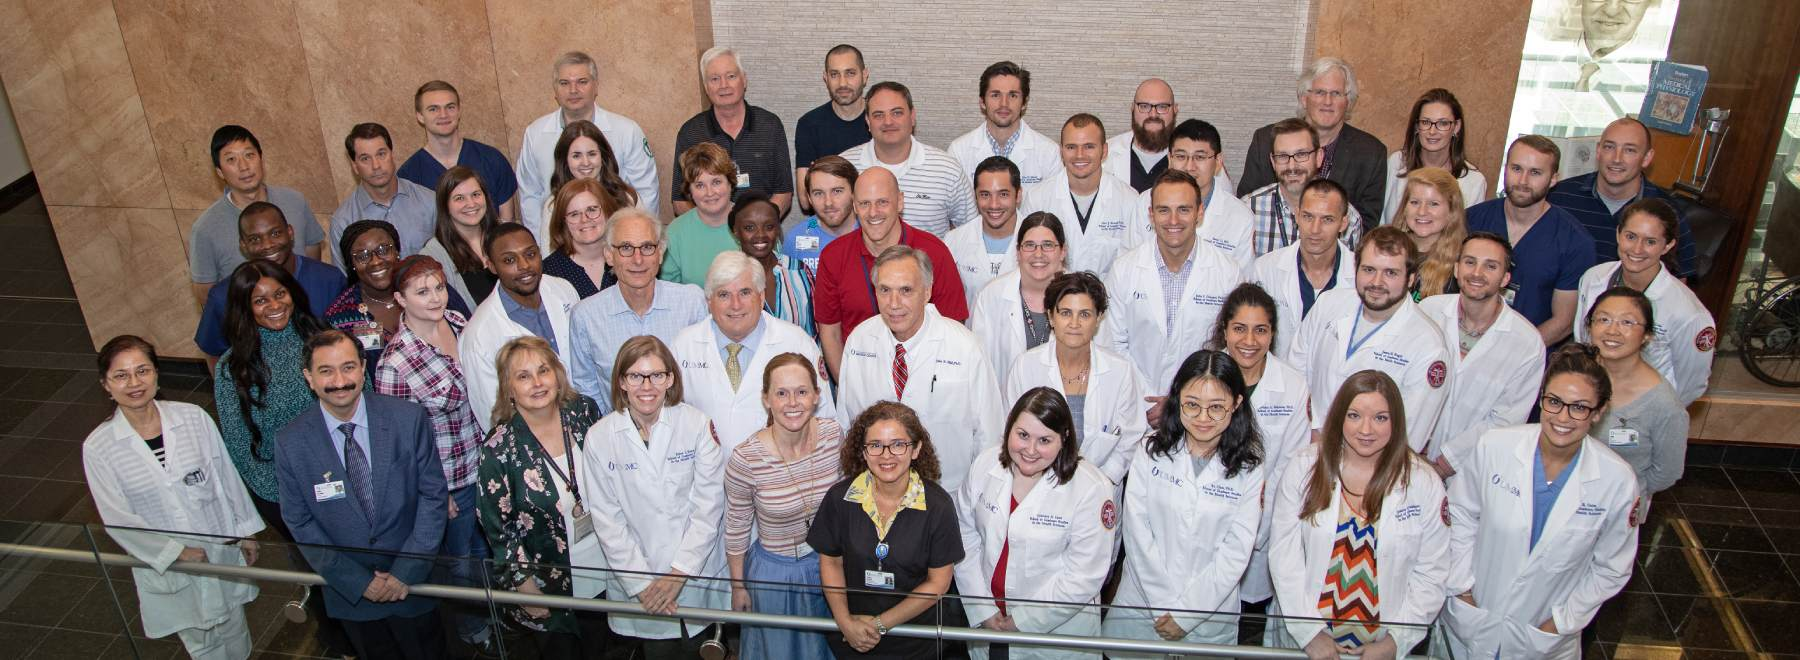 Group photo of physicians in white coats